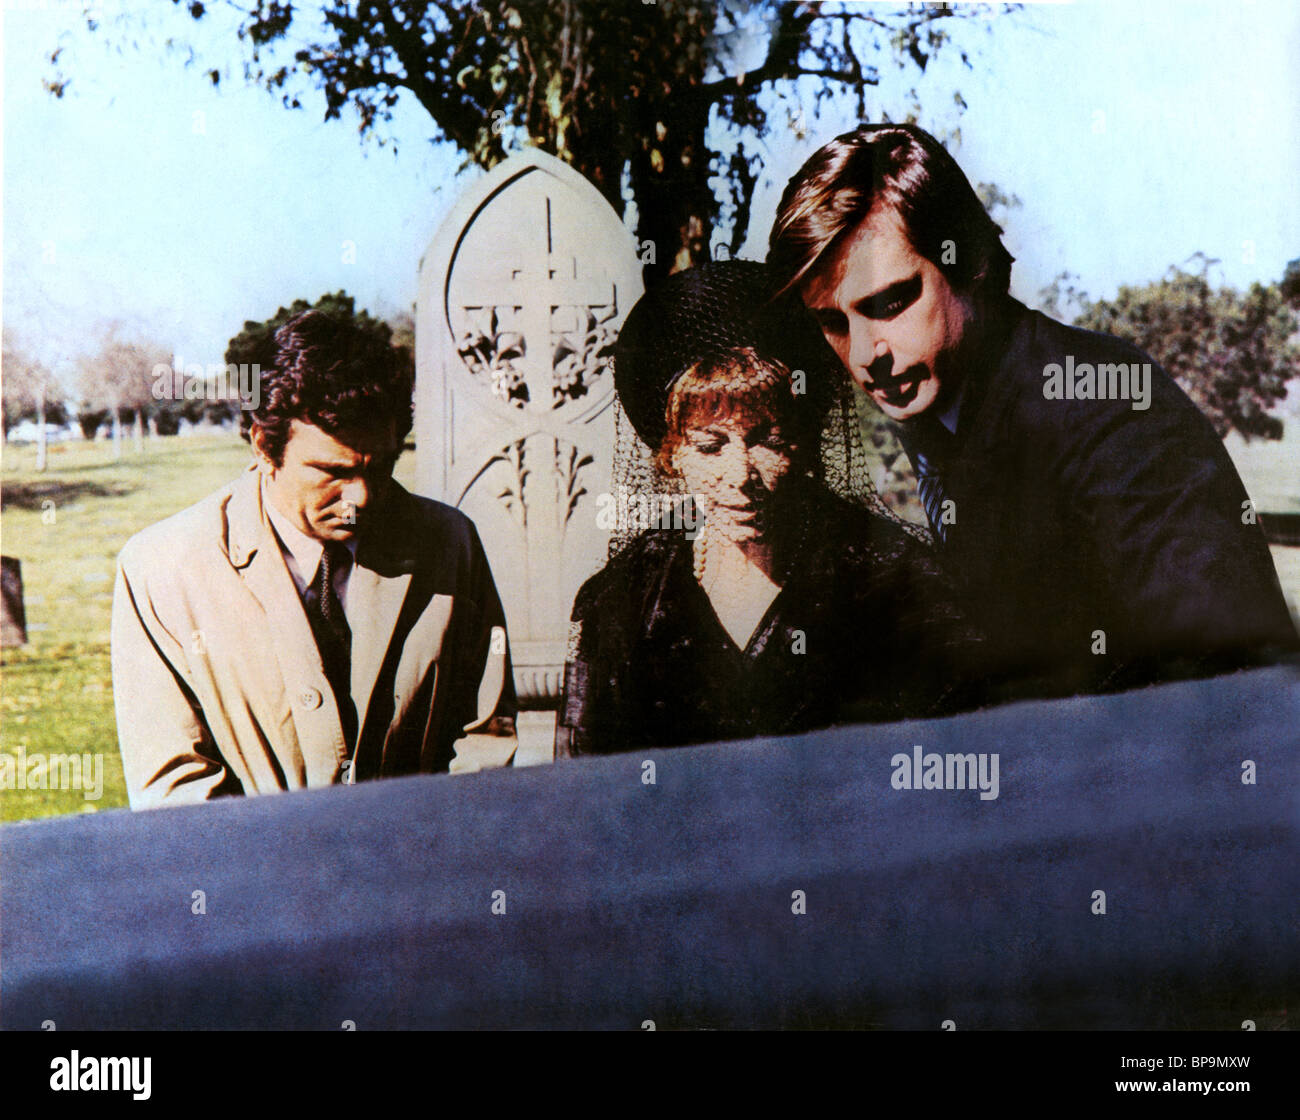 PETER FALK & LEE GRANT RANSOM FOR A DEAD MAN (1971) - Stock Image